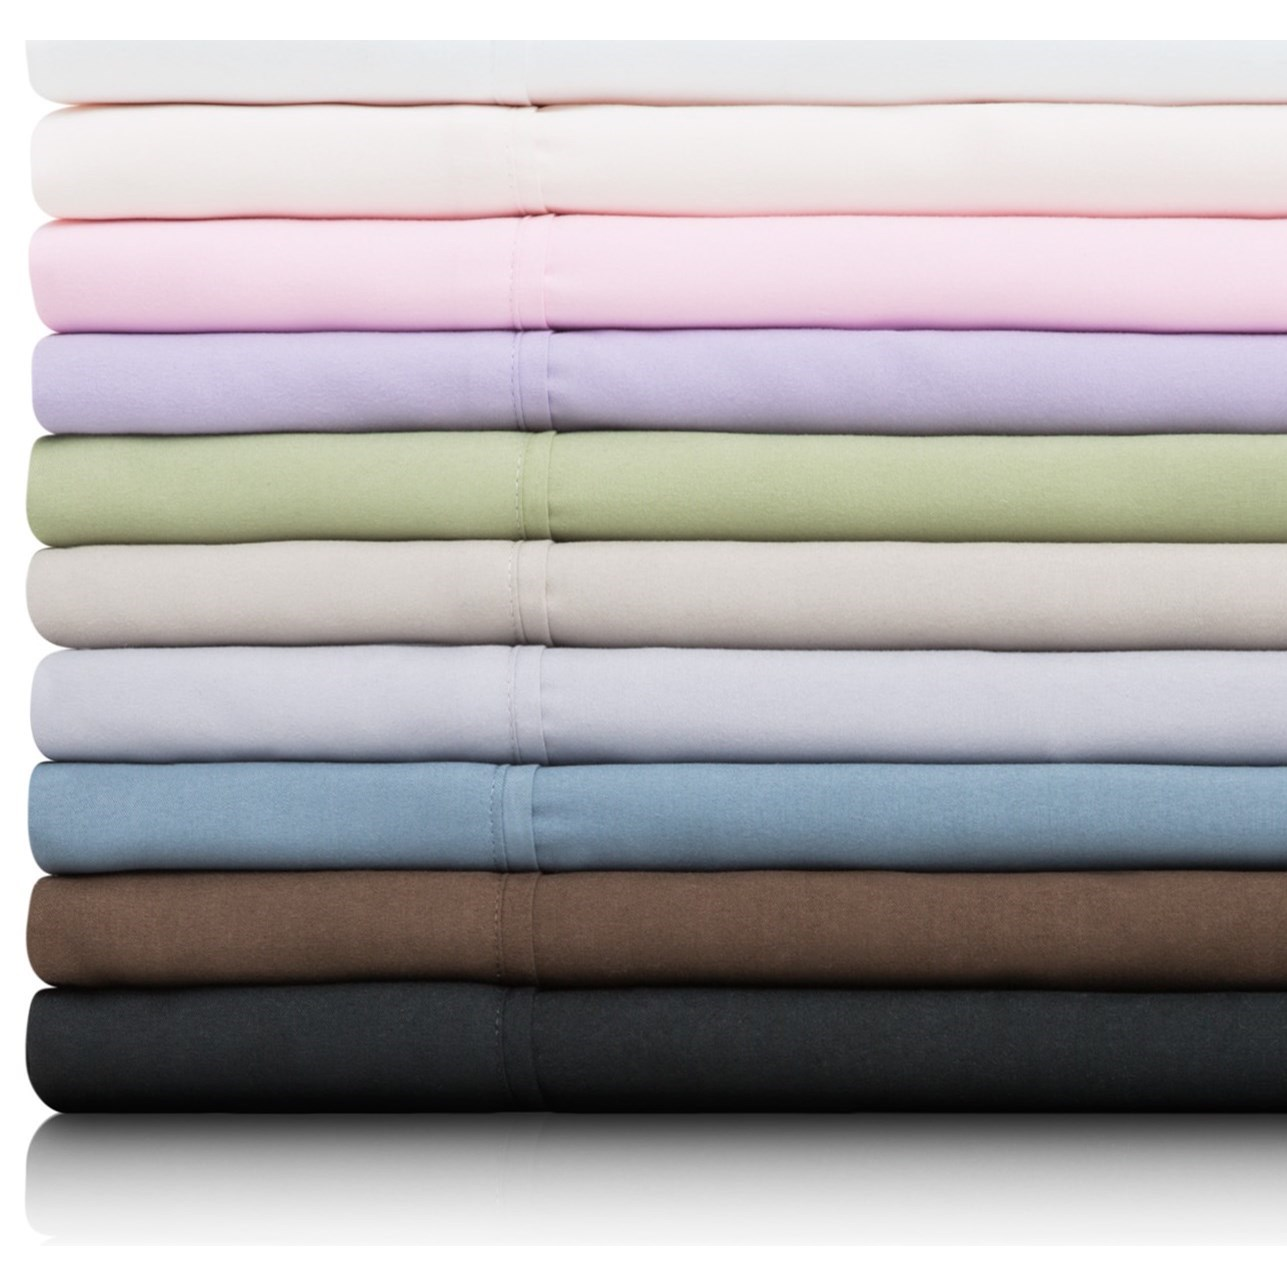 Malouf Brushed Microfiber Queen Woven™ Brushed Microfiber Olympic Shee - Item Number: MA90OQIVMS